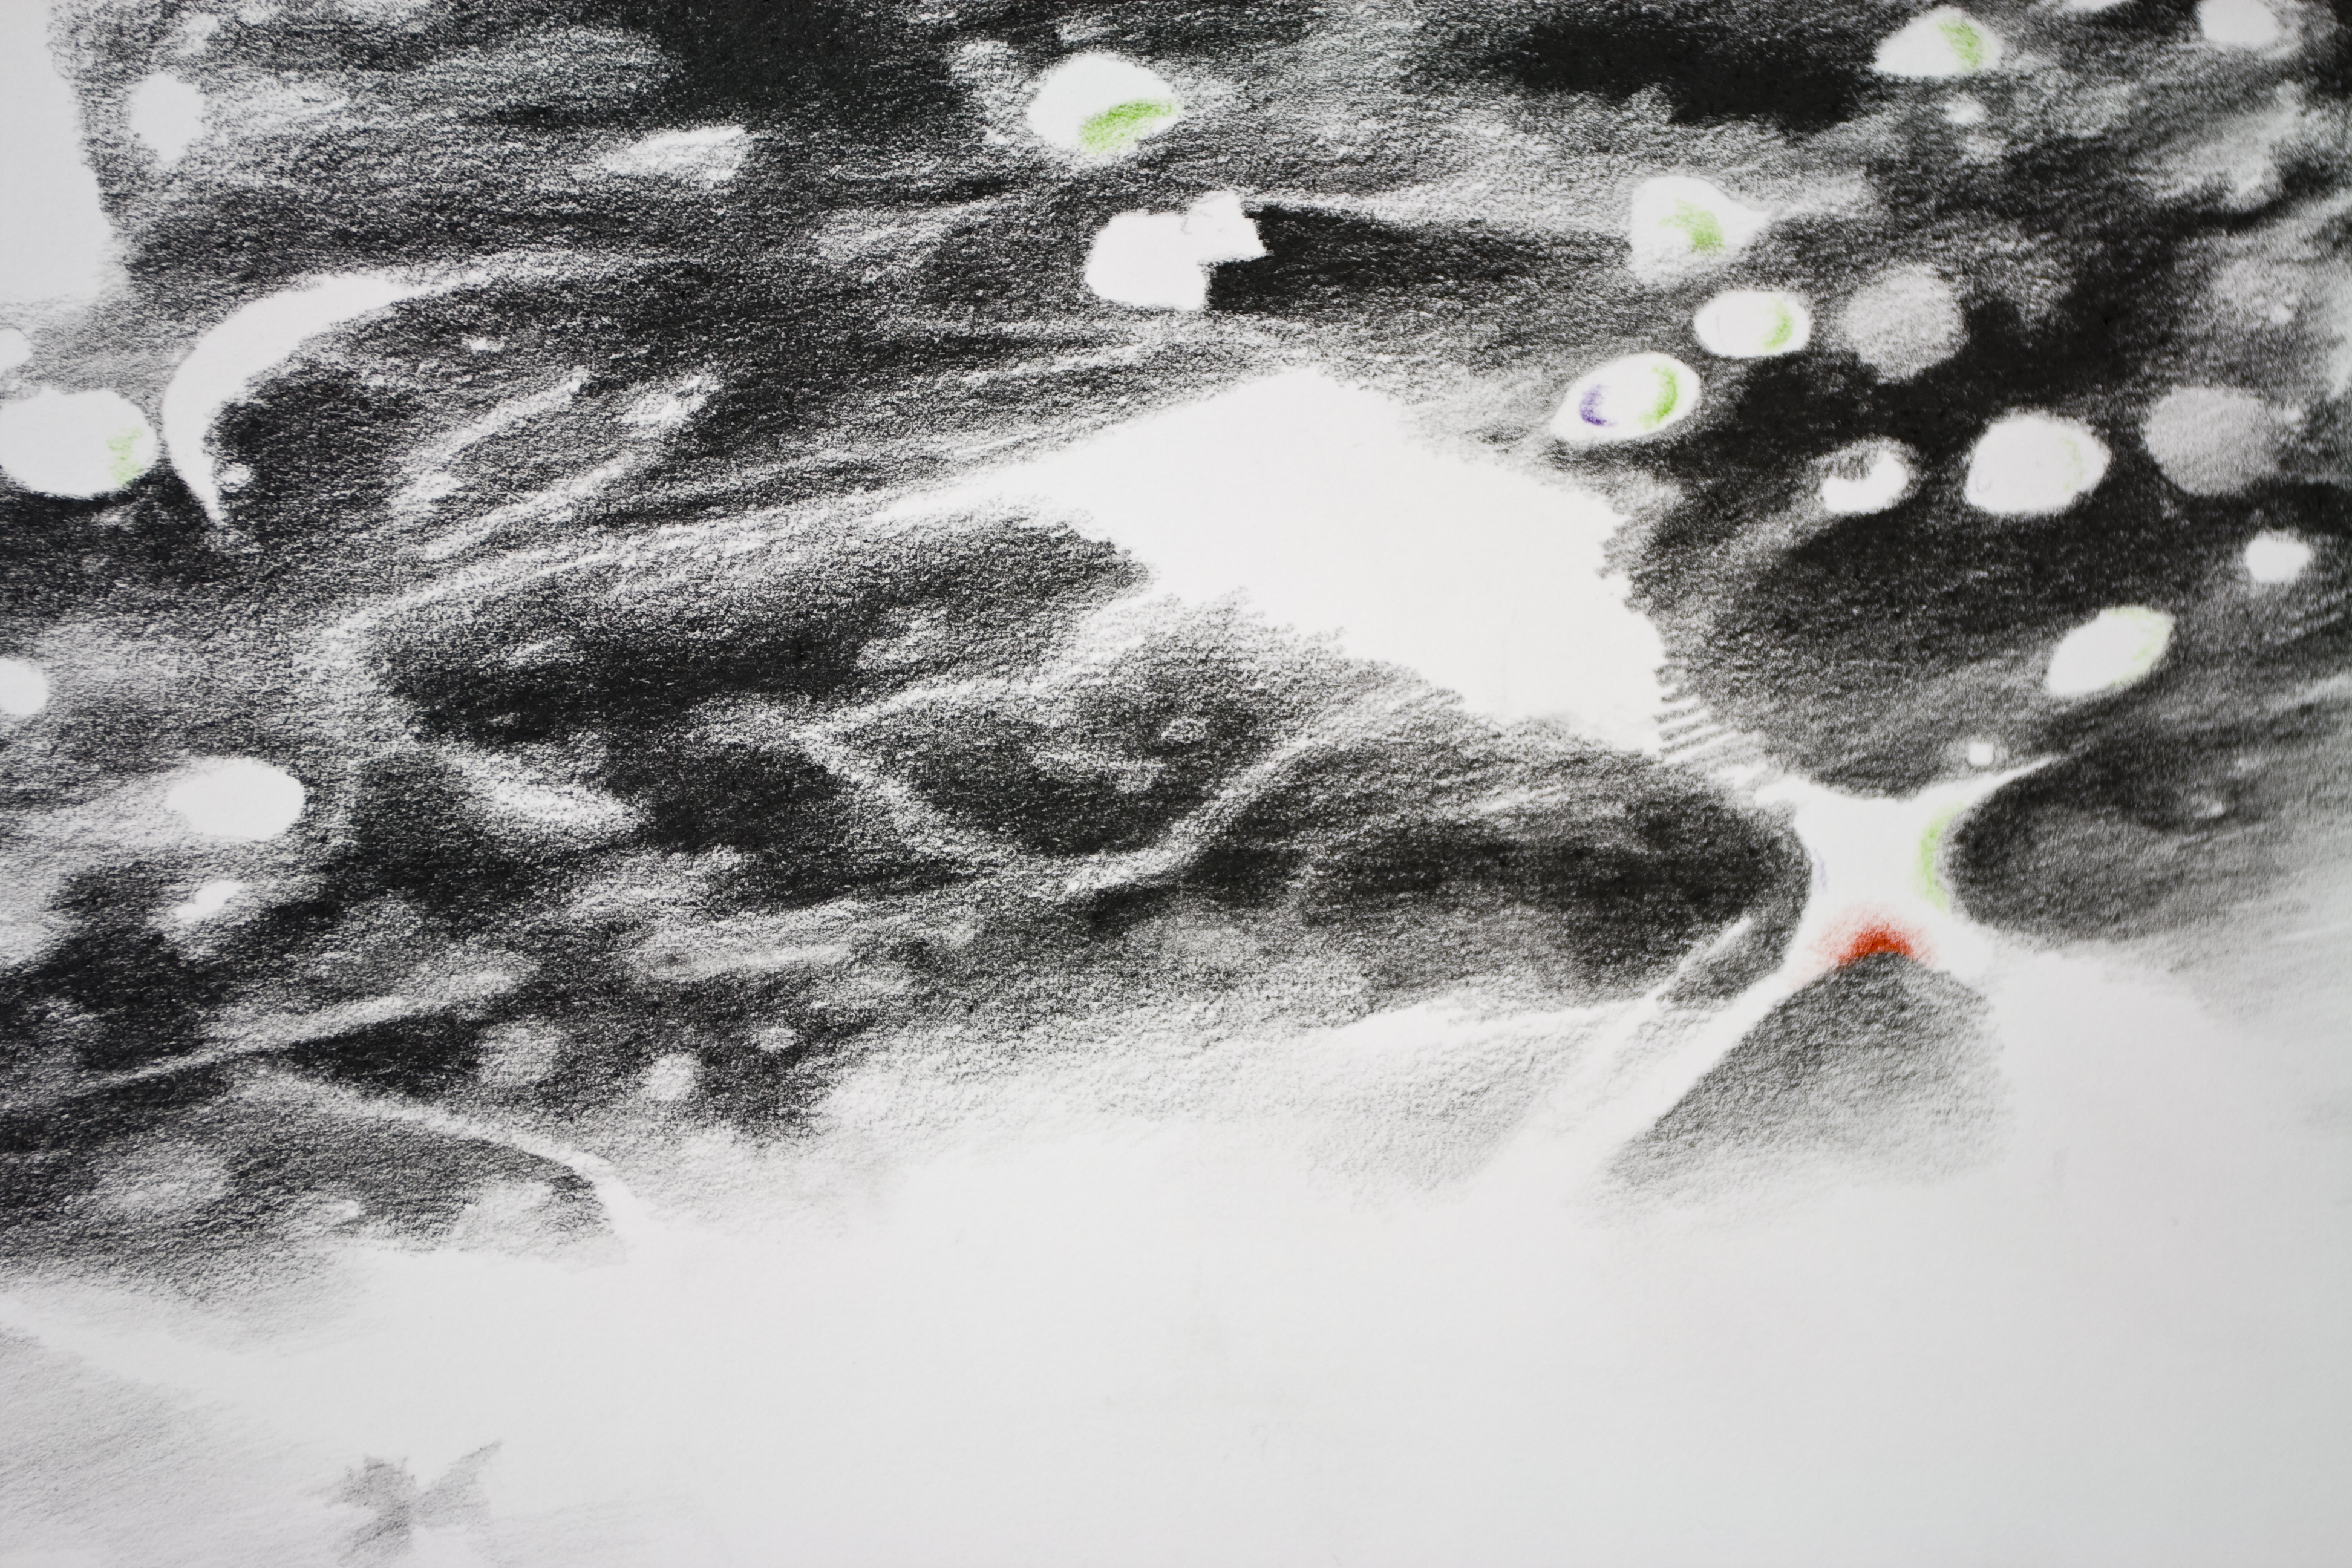 Surrender to the light II (detail) pencil drawing on paper, 140x80 cm, 2015